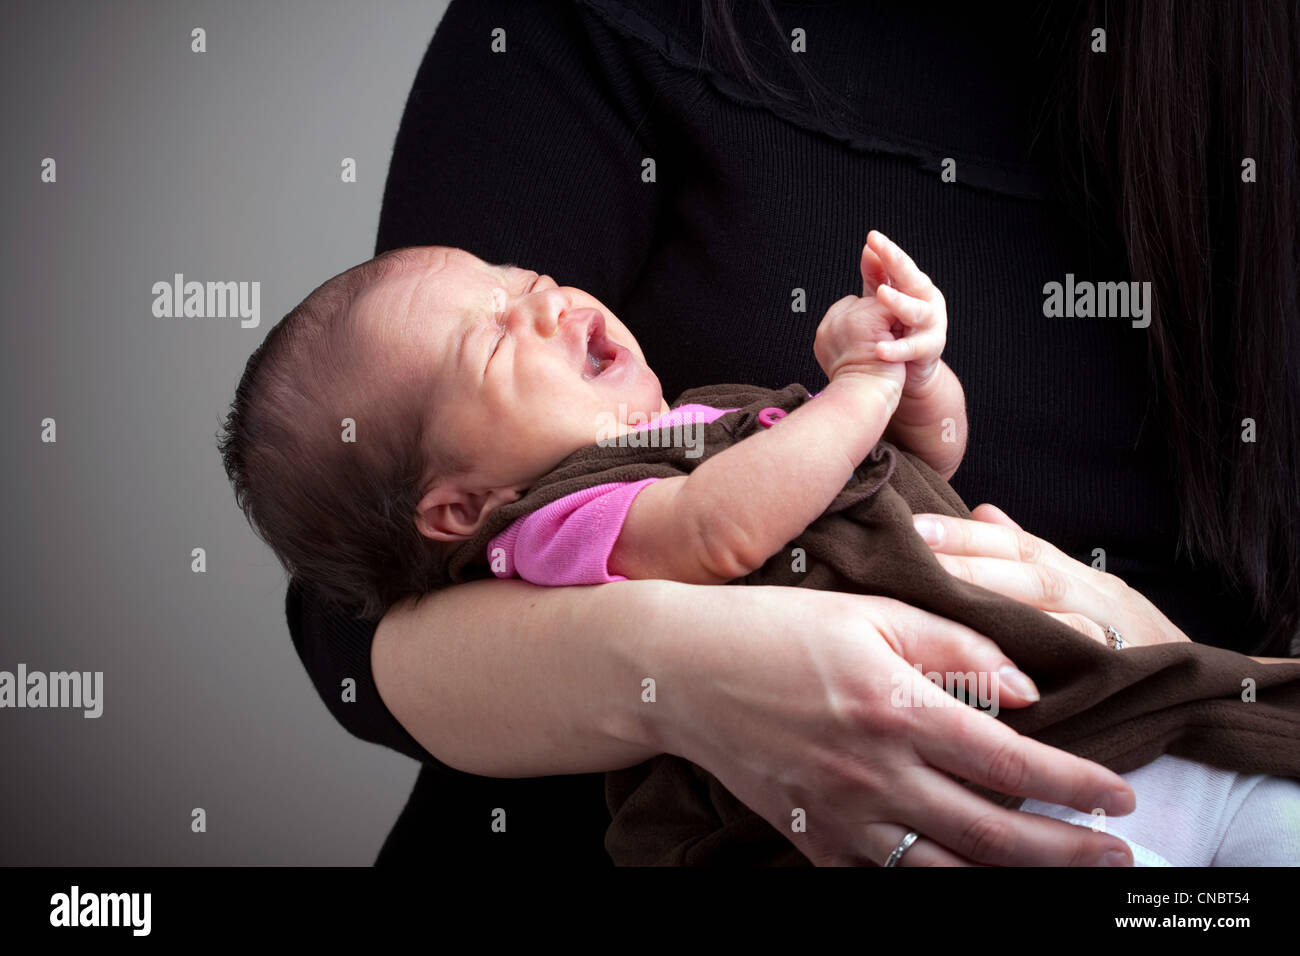 A mom holds a young newborn baby girl in her arms that is upset and crying. - Stock Image